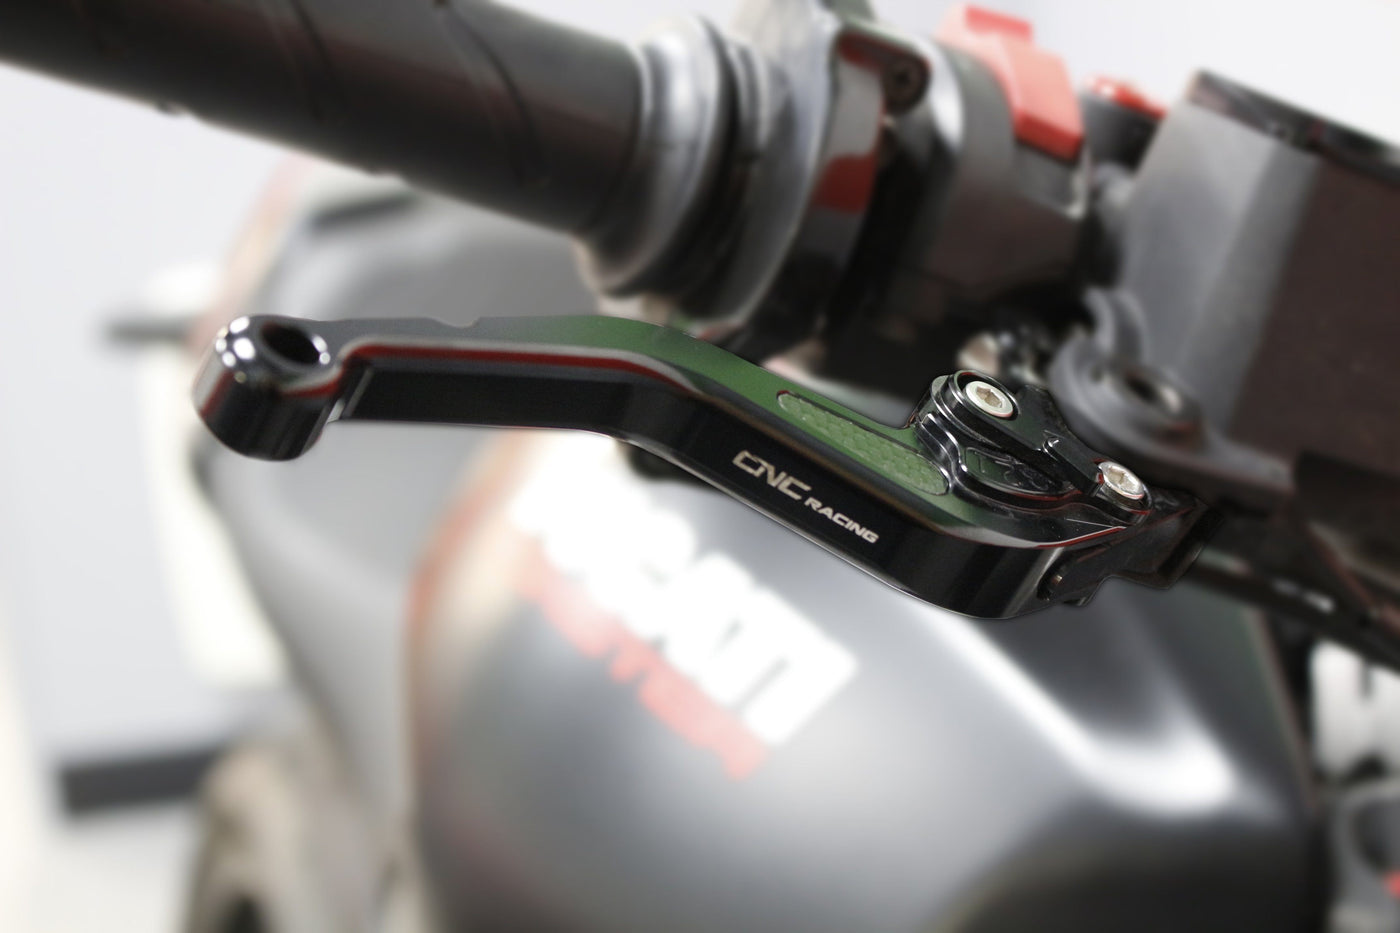 Hasil gambar untuk How to place your motorcycle lever